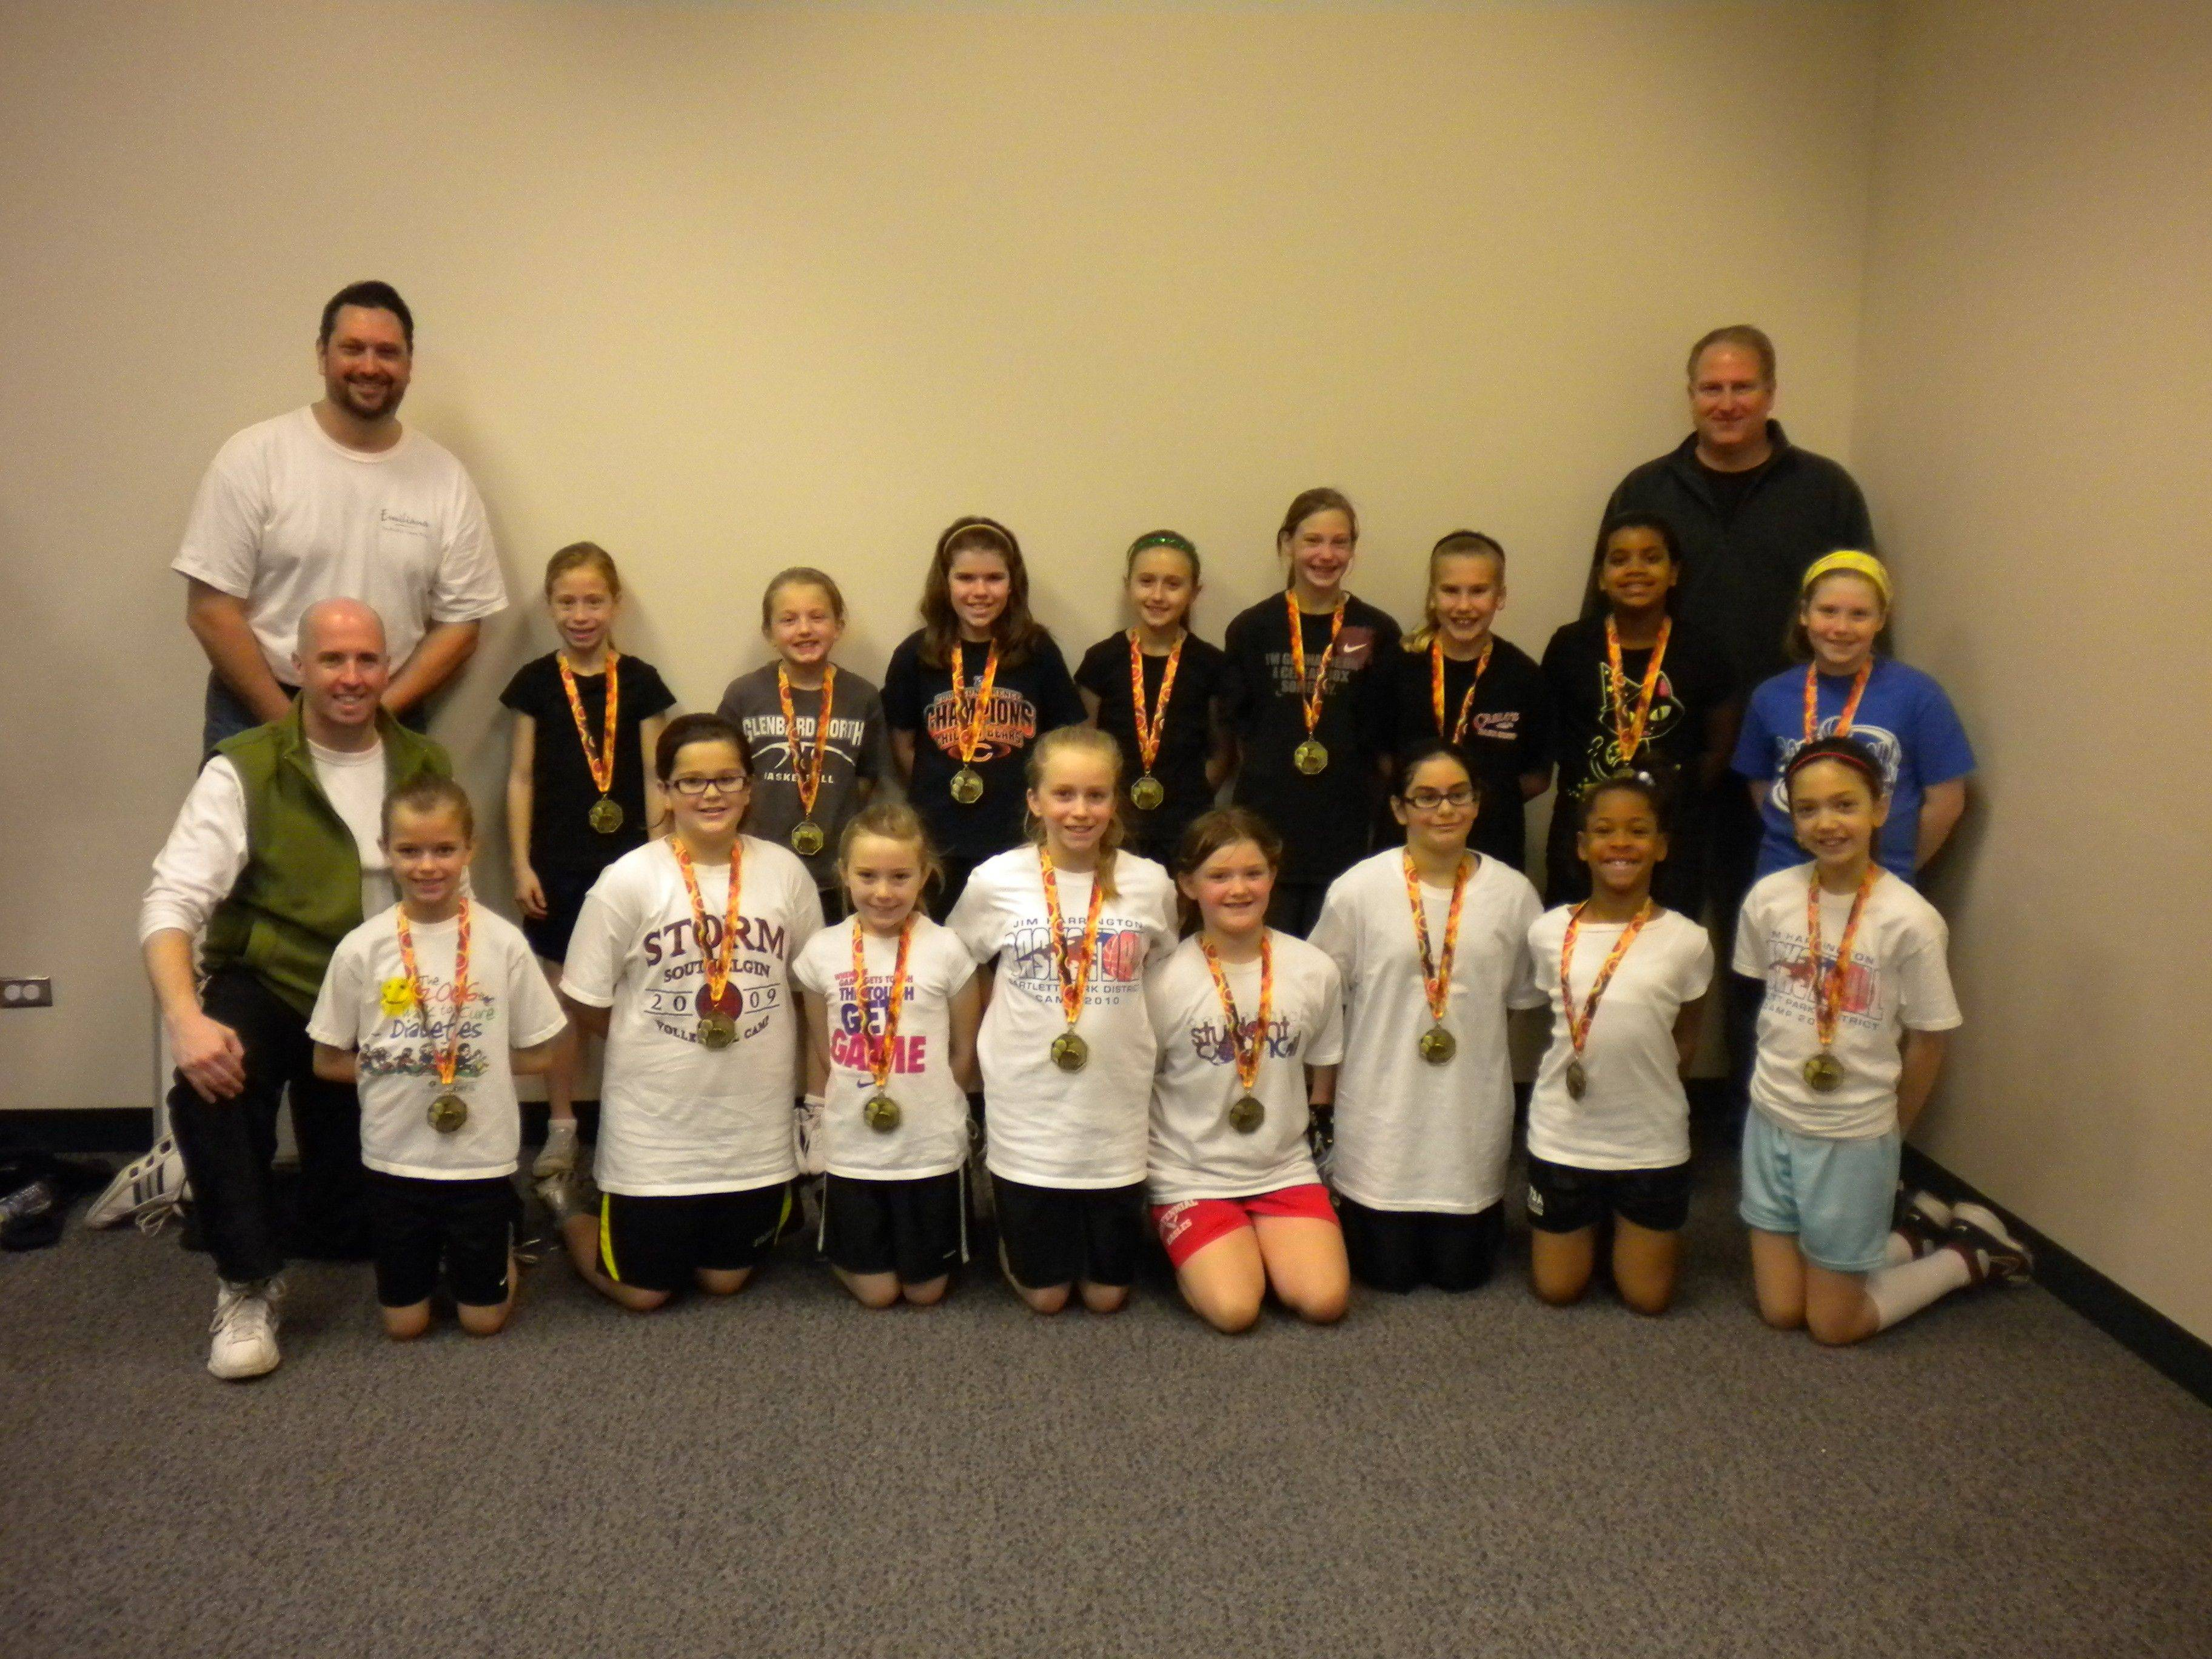 Third/fourth-grade team, from left, are front row wearing white: Maddie Sharko, Megan McClure, Ashley Sullivan, Analise Richcreek, Kailey Halterman, Brooke Cambra, Aryanna Williams and Savannah Standefer; Back row wearing black: Coach John Standefer, Kaleigh Canavan, Hannah Walker, Megan Lombardo, Anna Tomillo, Paige Edmier, Teagan Noesen, Camille Luckett and Julia Wafford; standing behind left side, Coach Jason Sharko; right side: Coach John Wafford.